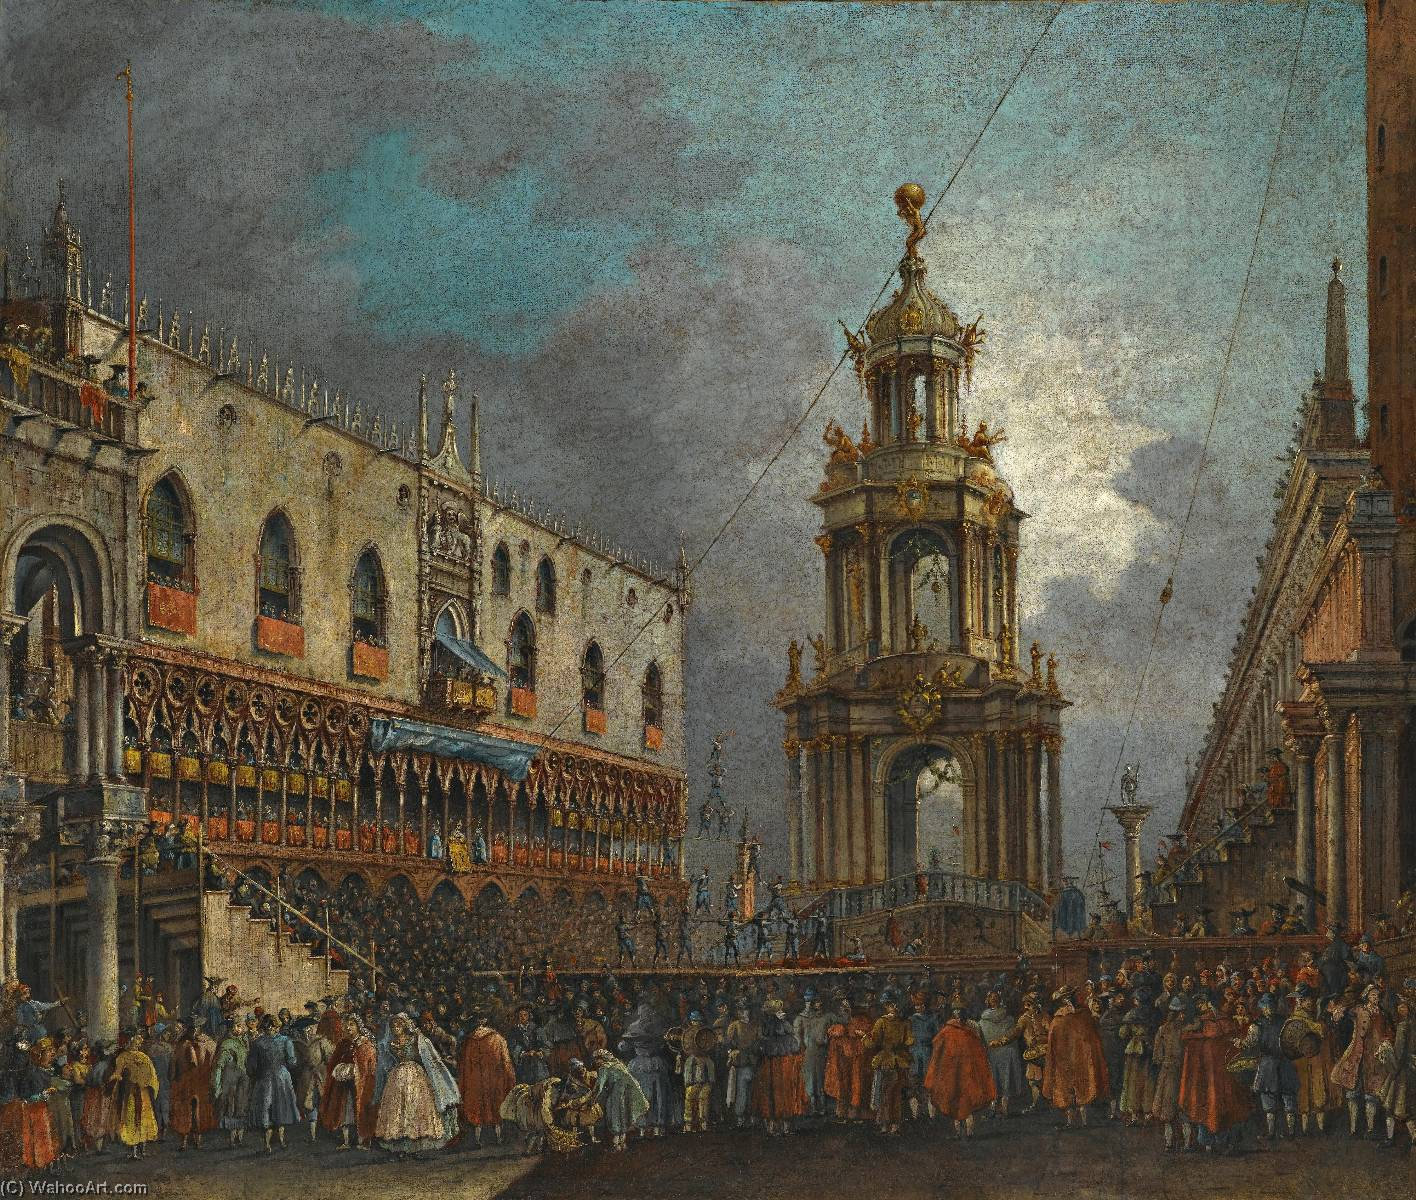 Venice, a view of the piazzetta at carnival by Francesco Zanin | Oil Painting | WahooArt.com